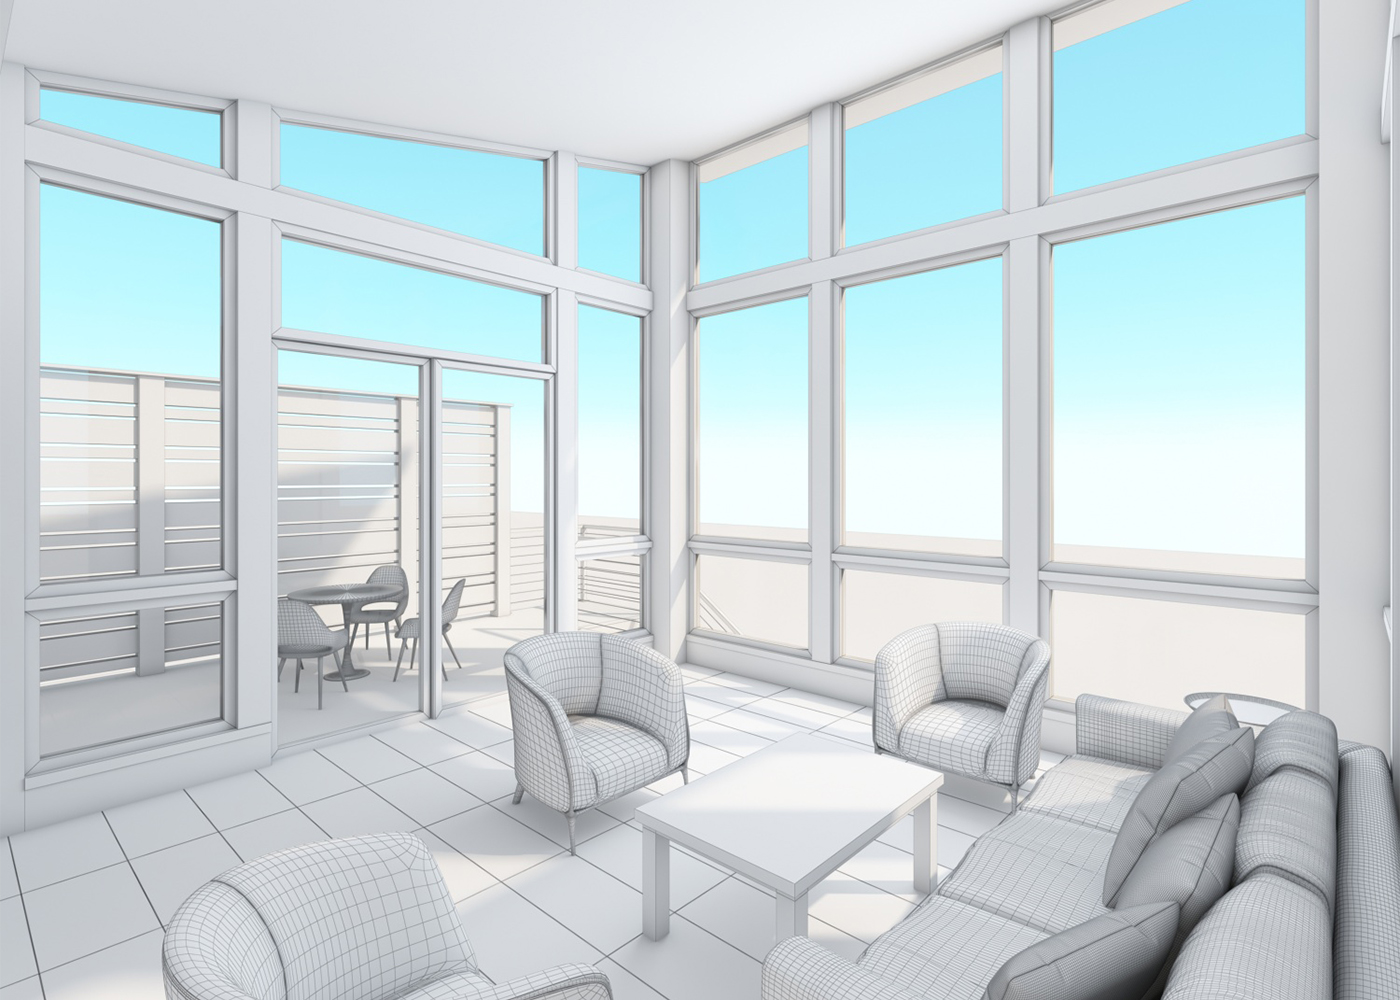 Home Sunroom Addition - interior conceptual rendering